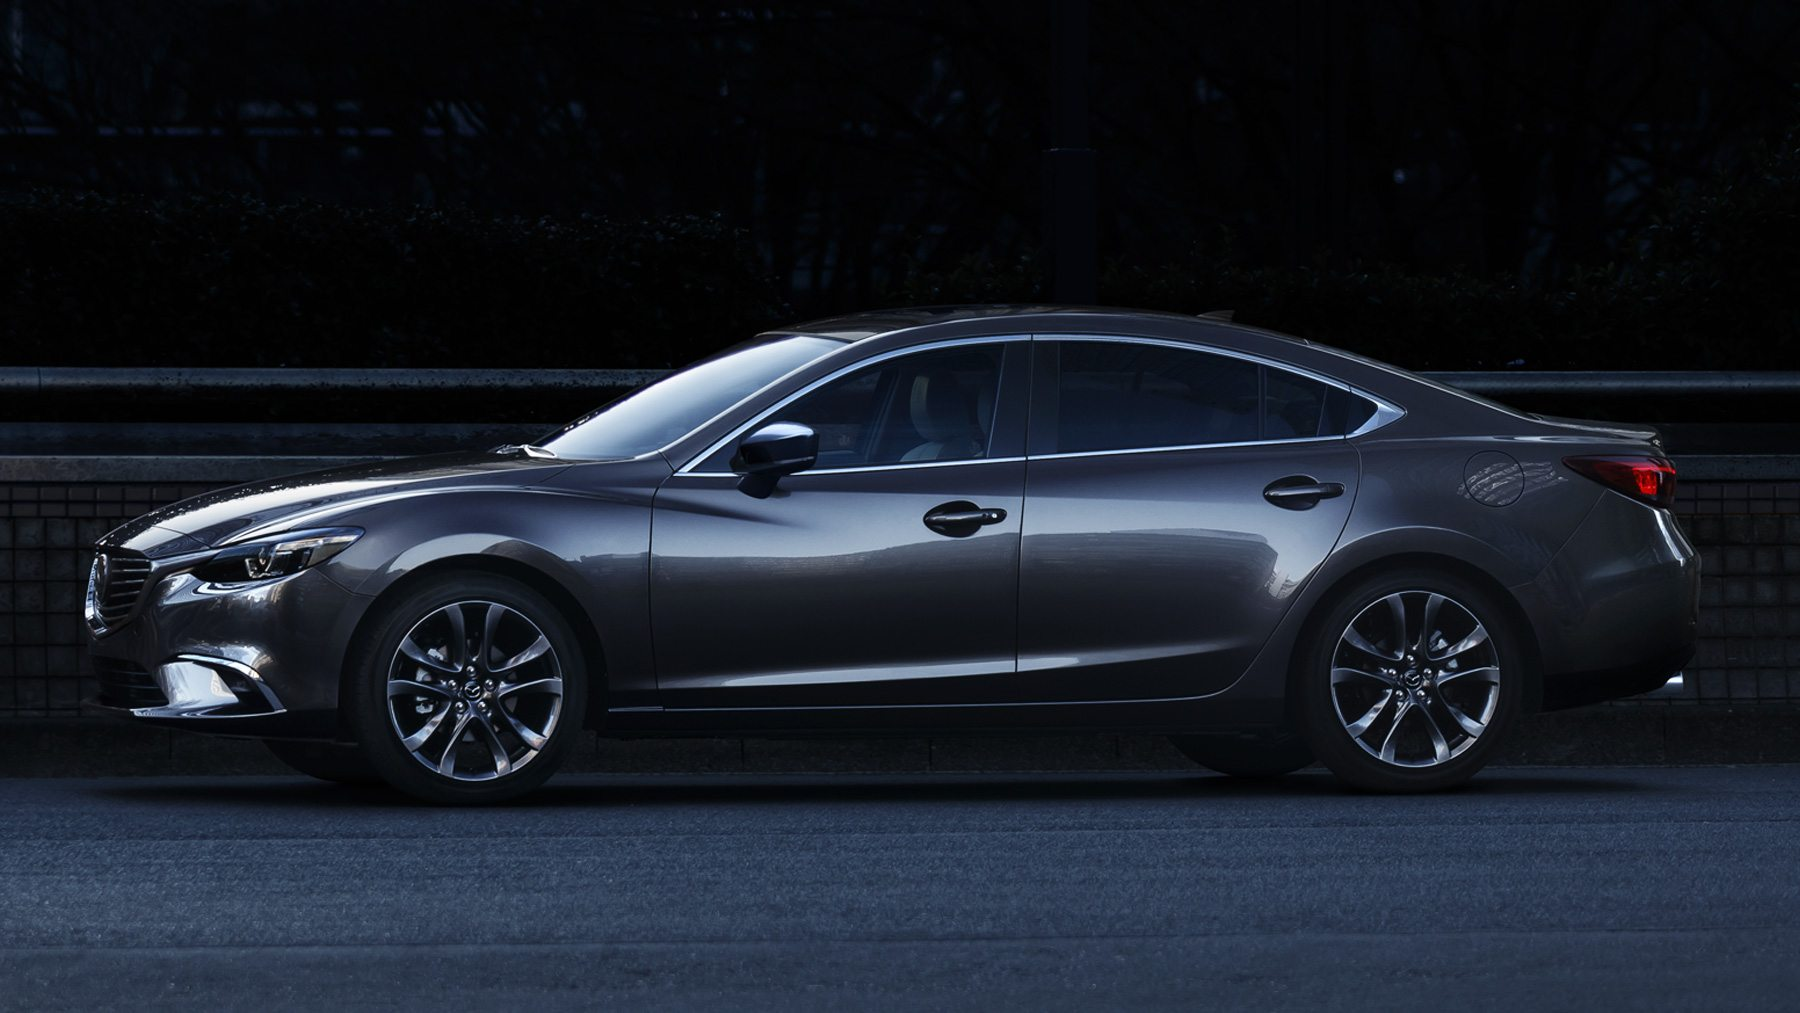 2017 Mazda 6 Sedan 2 5 S Sedan Price In Uae Specs